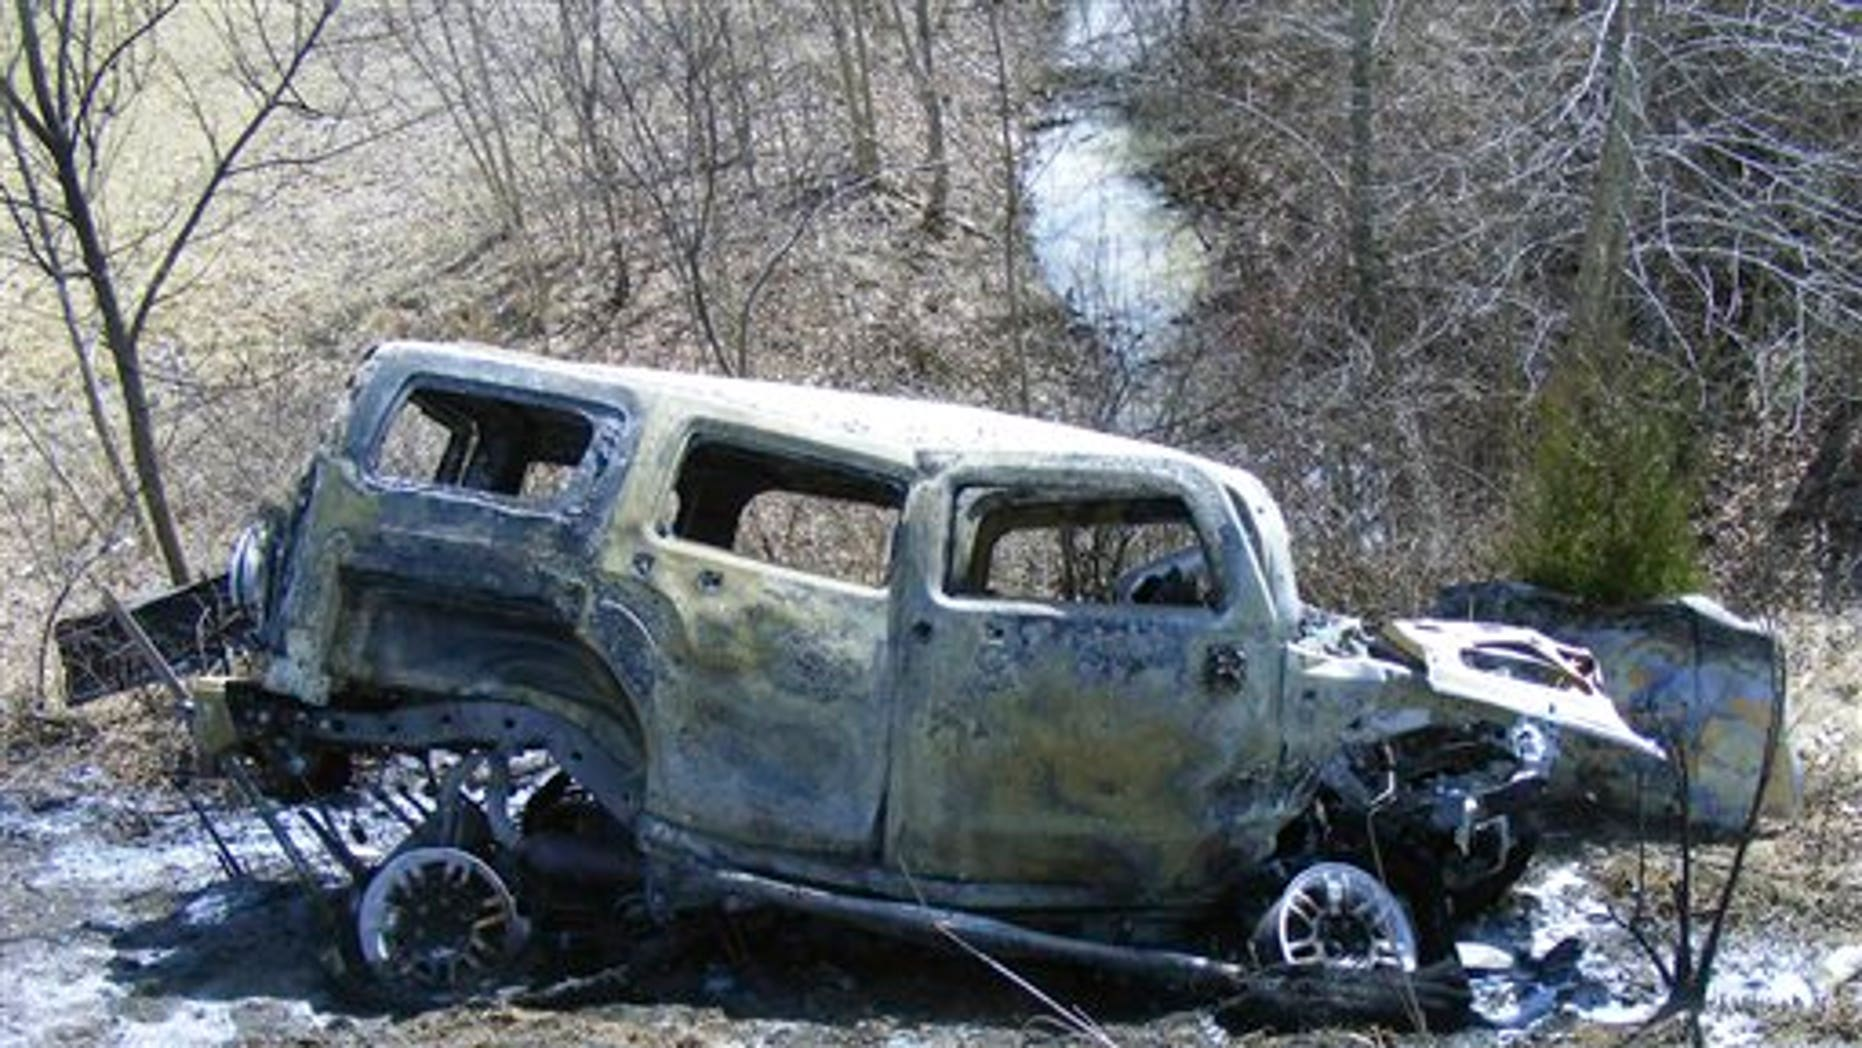 2009: The burned vehicle after an accident in Marion, Ohio.